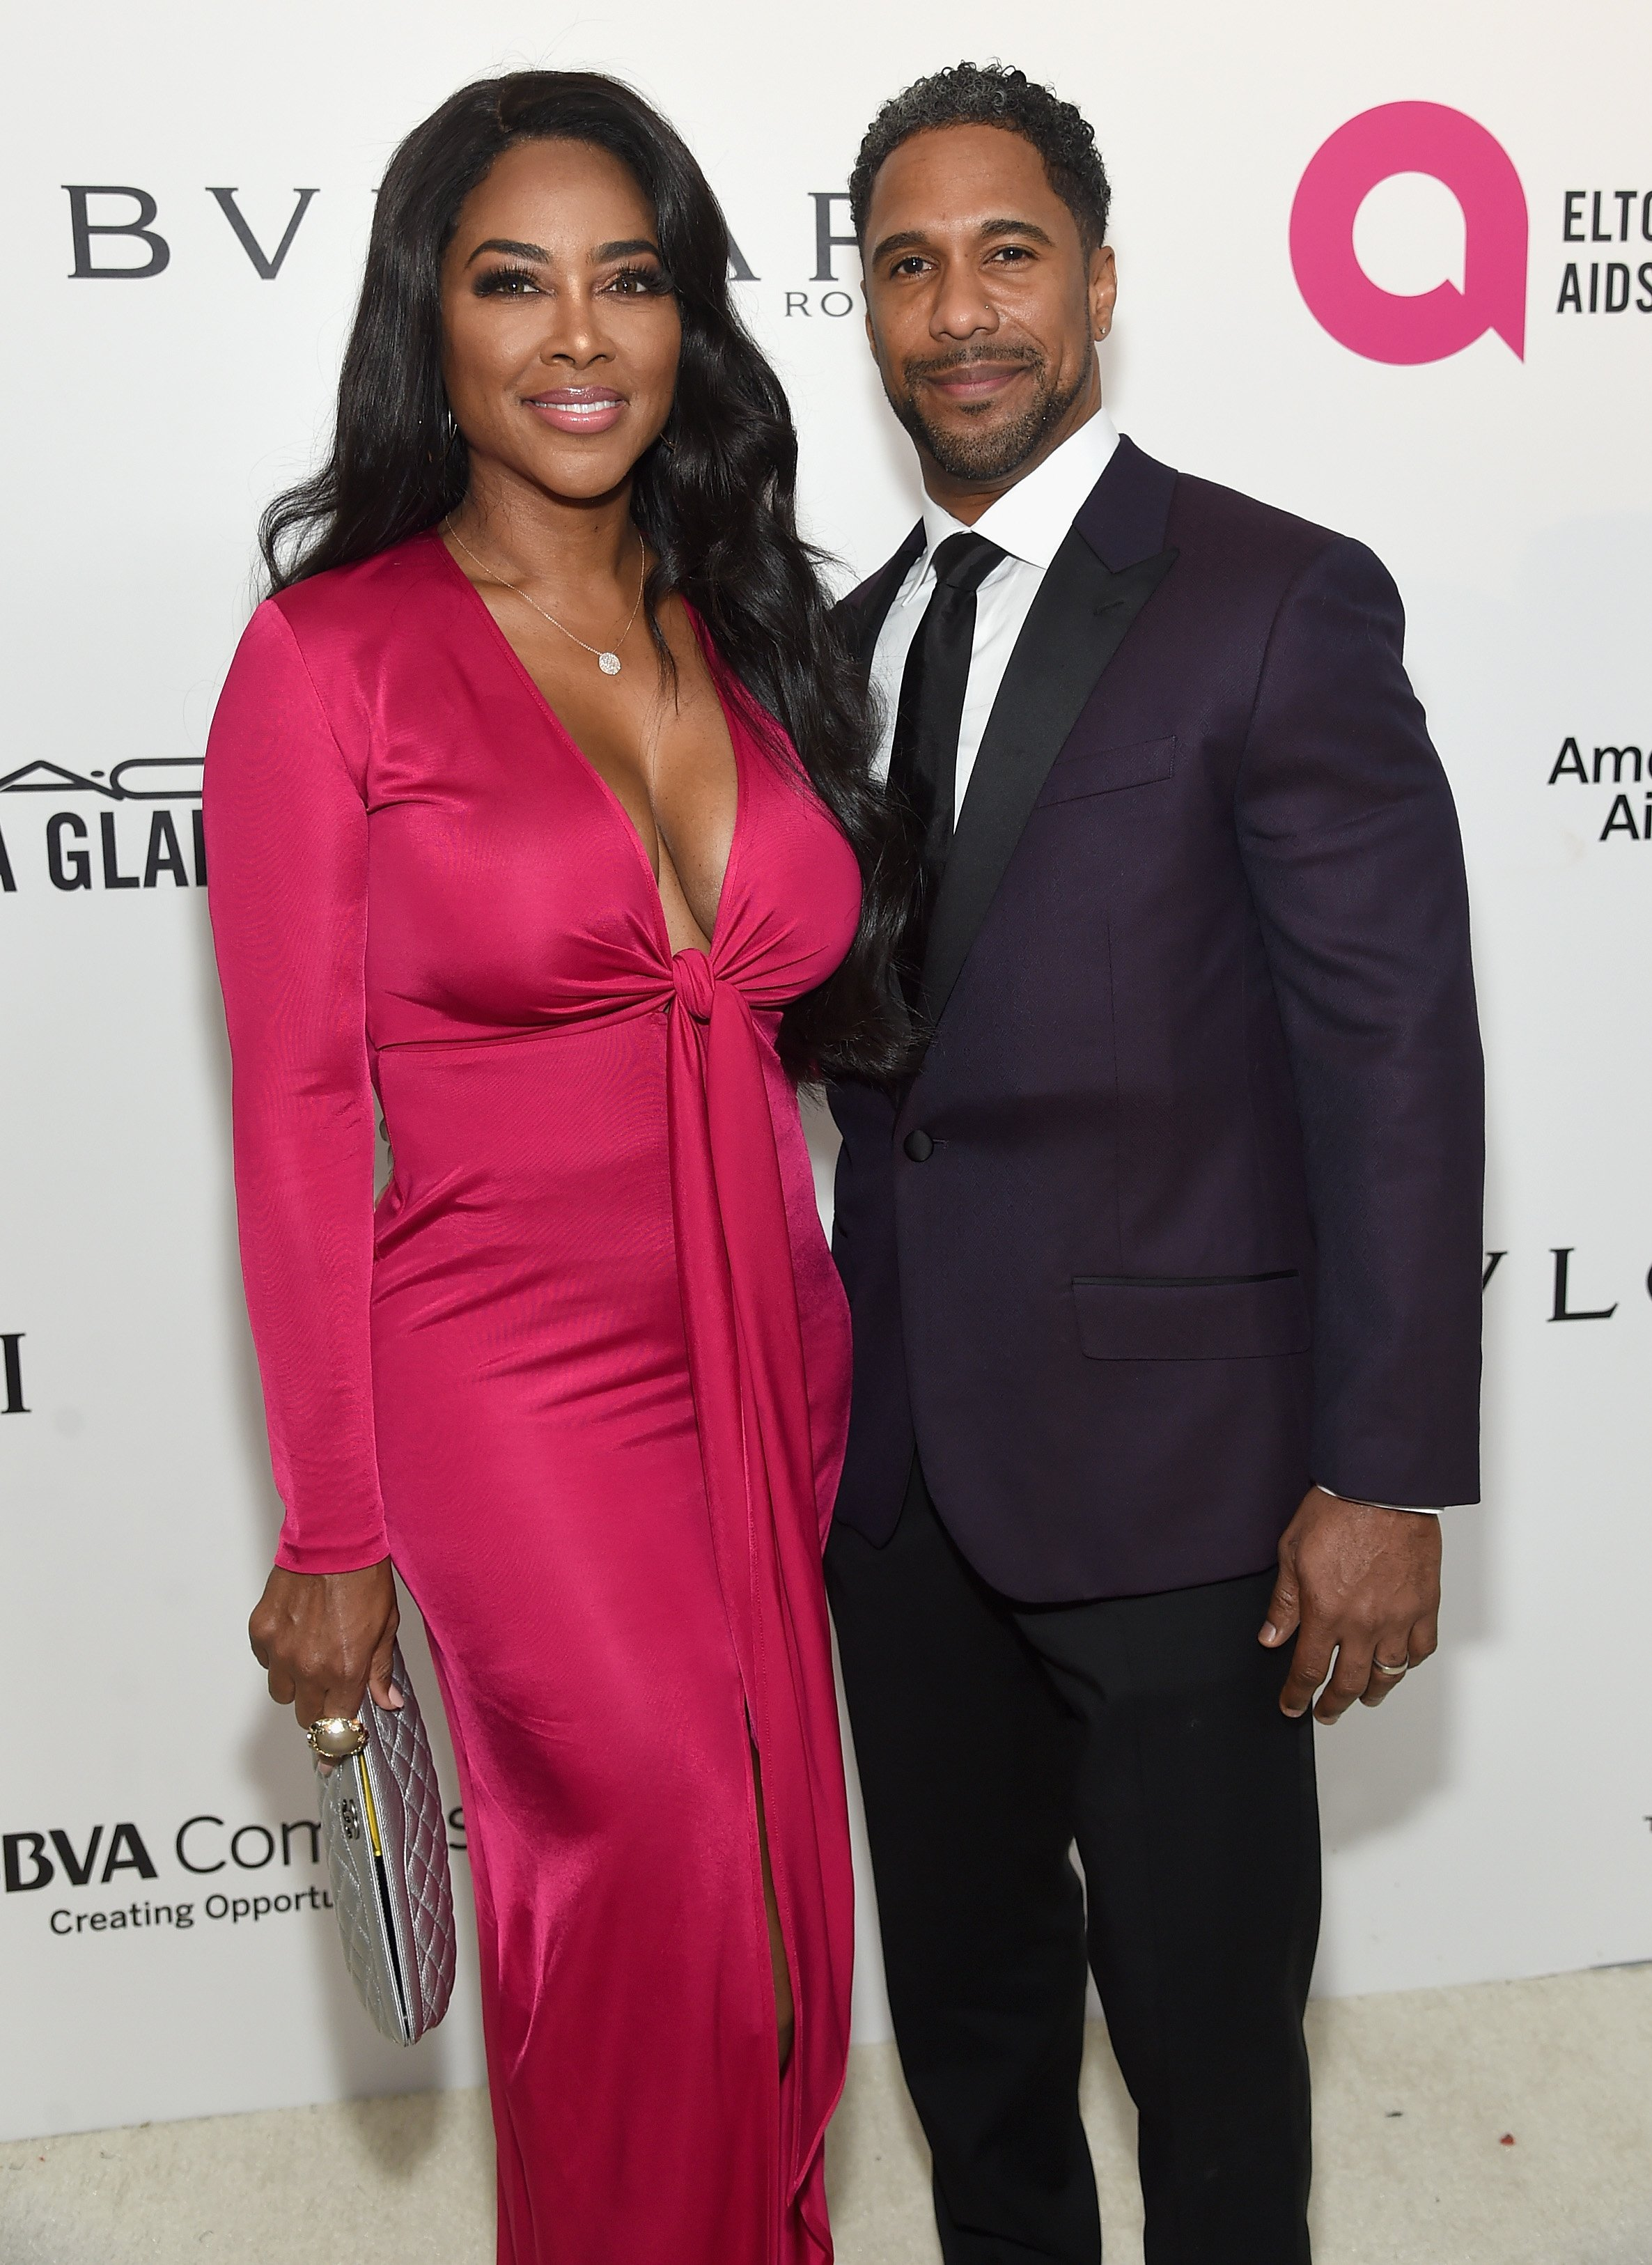 Kenya Moore & Marc Daly at the Elton John AIDS Foundation's Academy Awards Viewing Party in California on Mar. 4, 2018 | Source: Getty Images/GlobalImagesUkraine